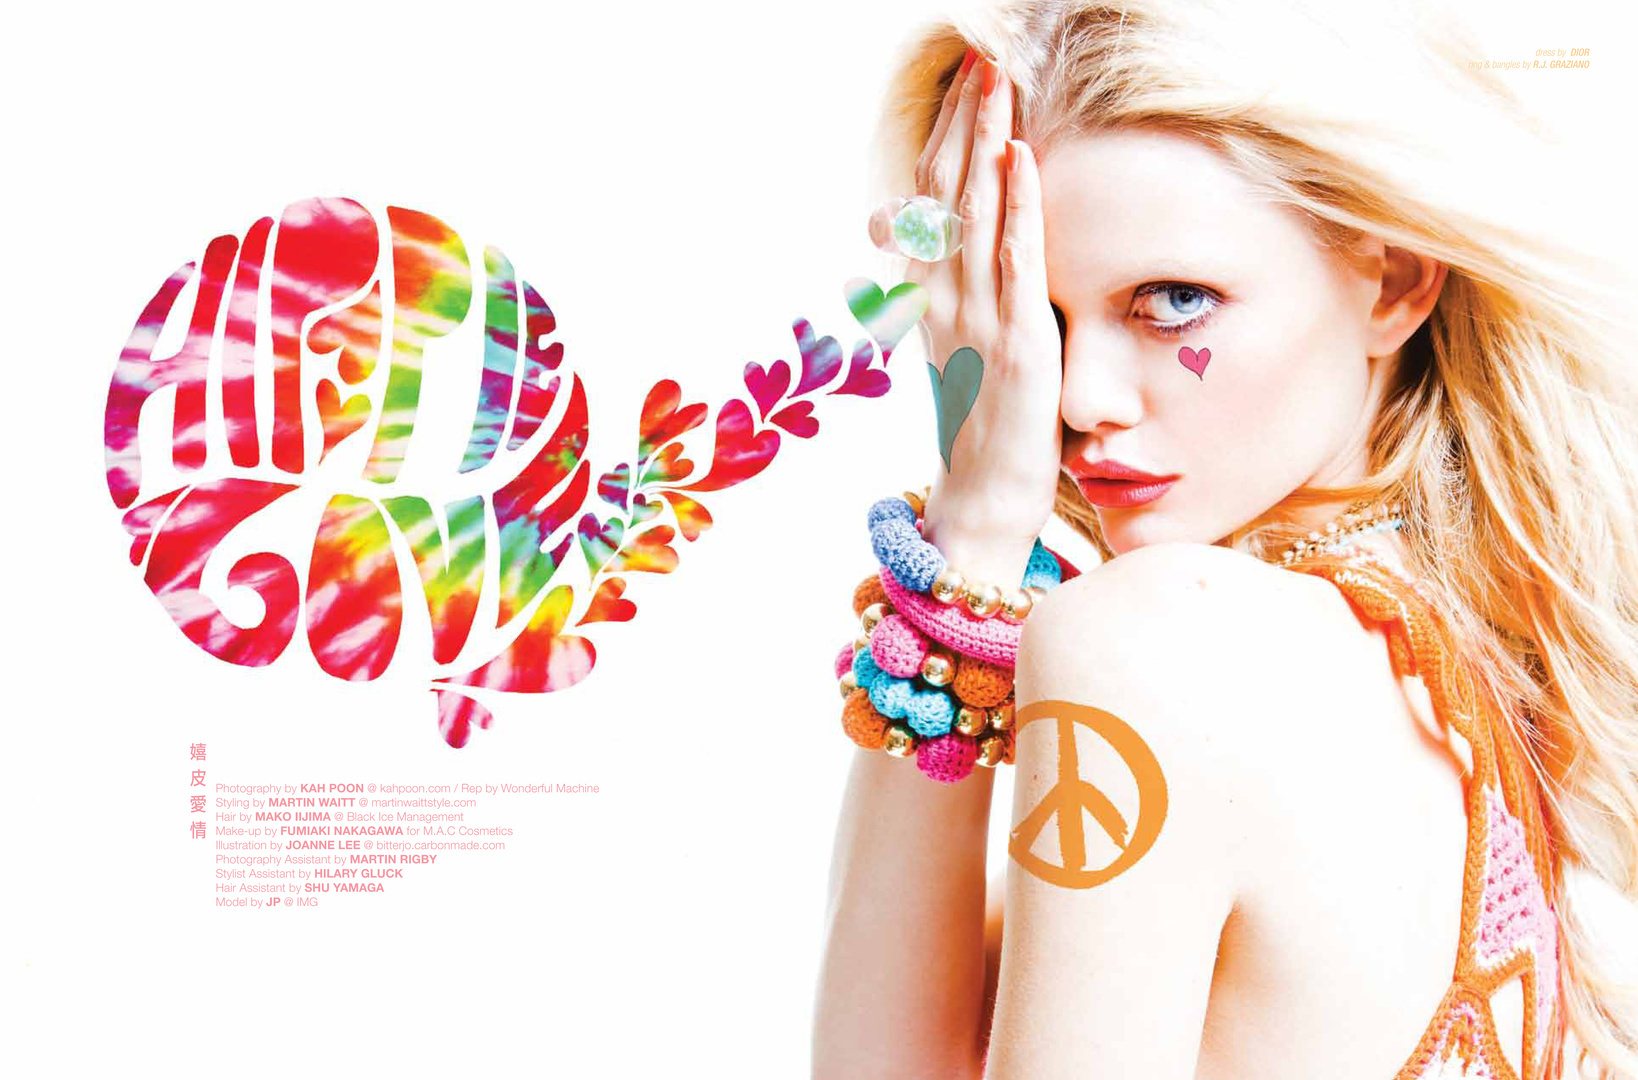 Hippie Love by Kah Poon_low-res-1.jpg